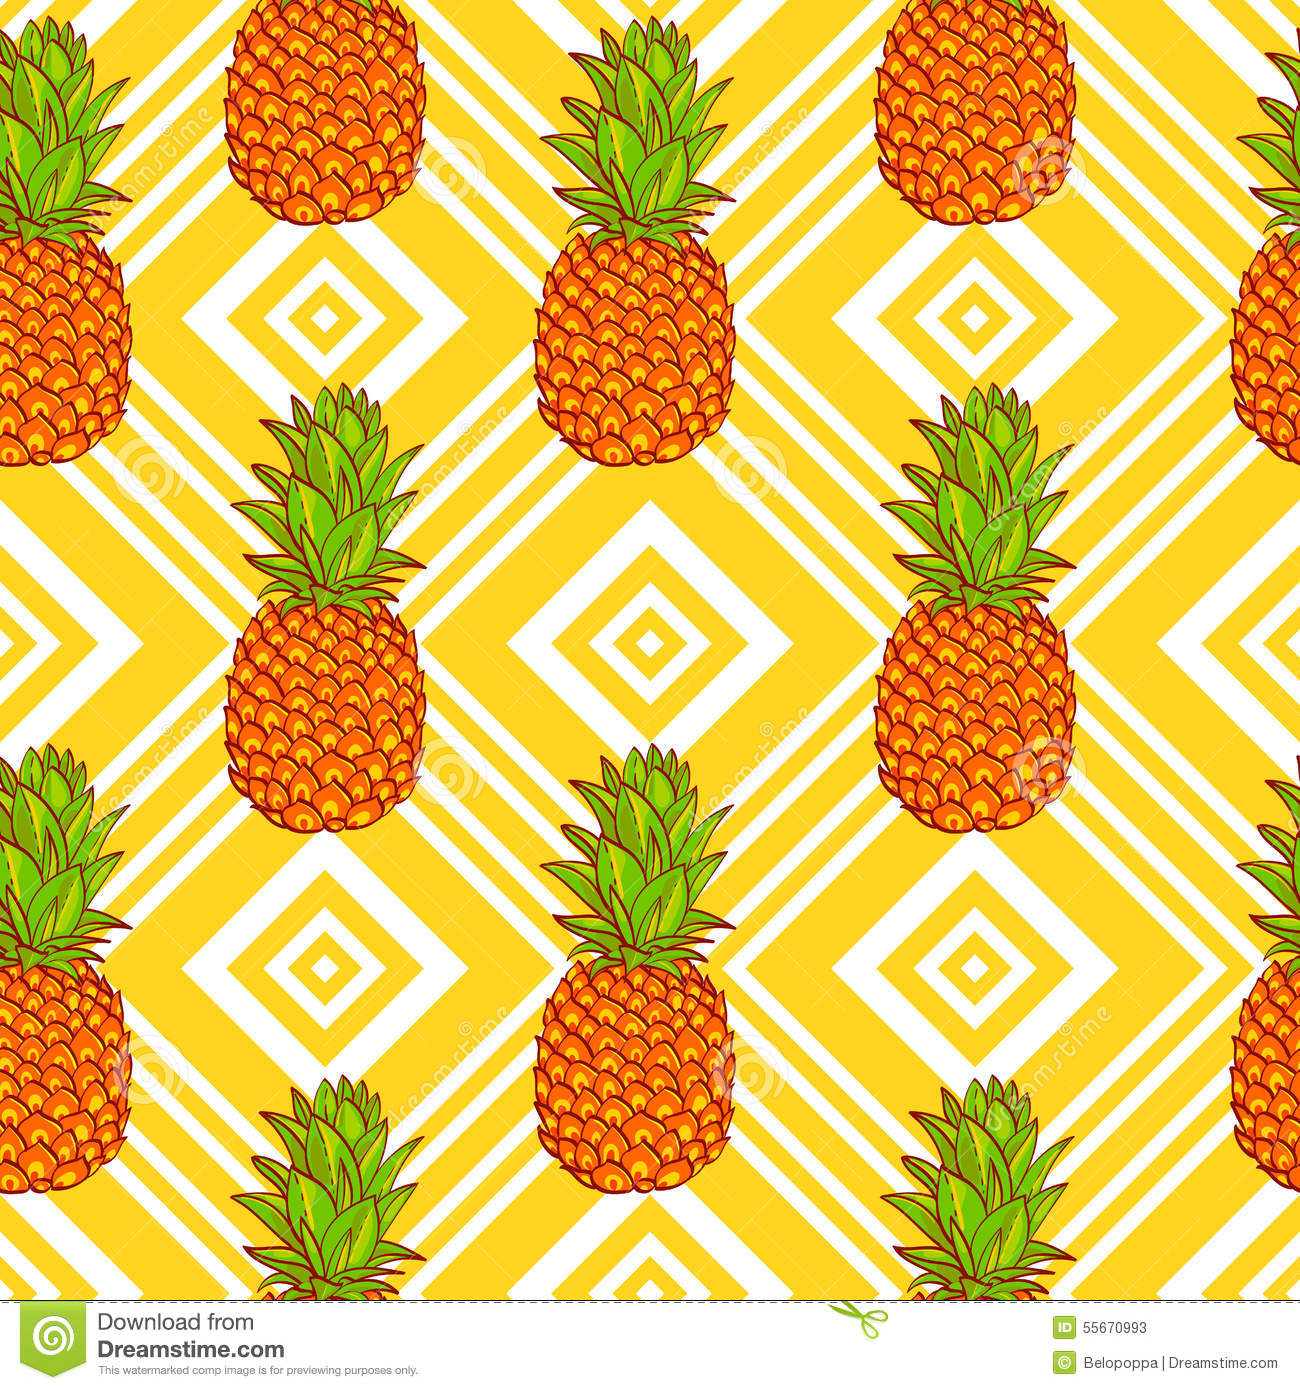 Tropical pineapples background stock vector illustration for Fond ecran ananas